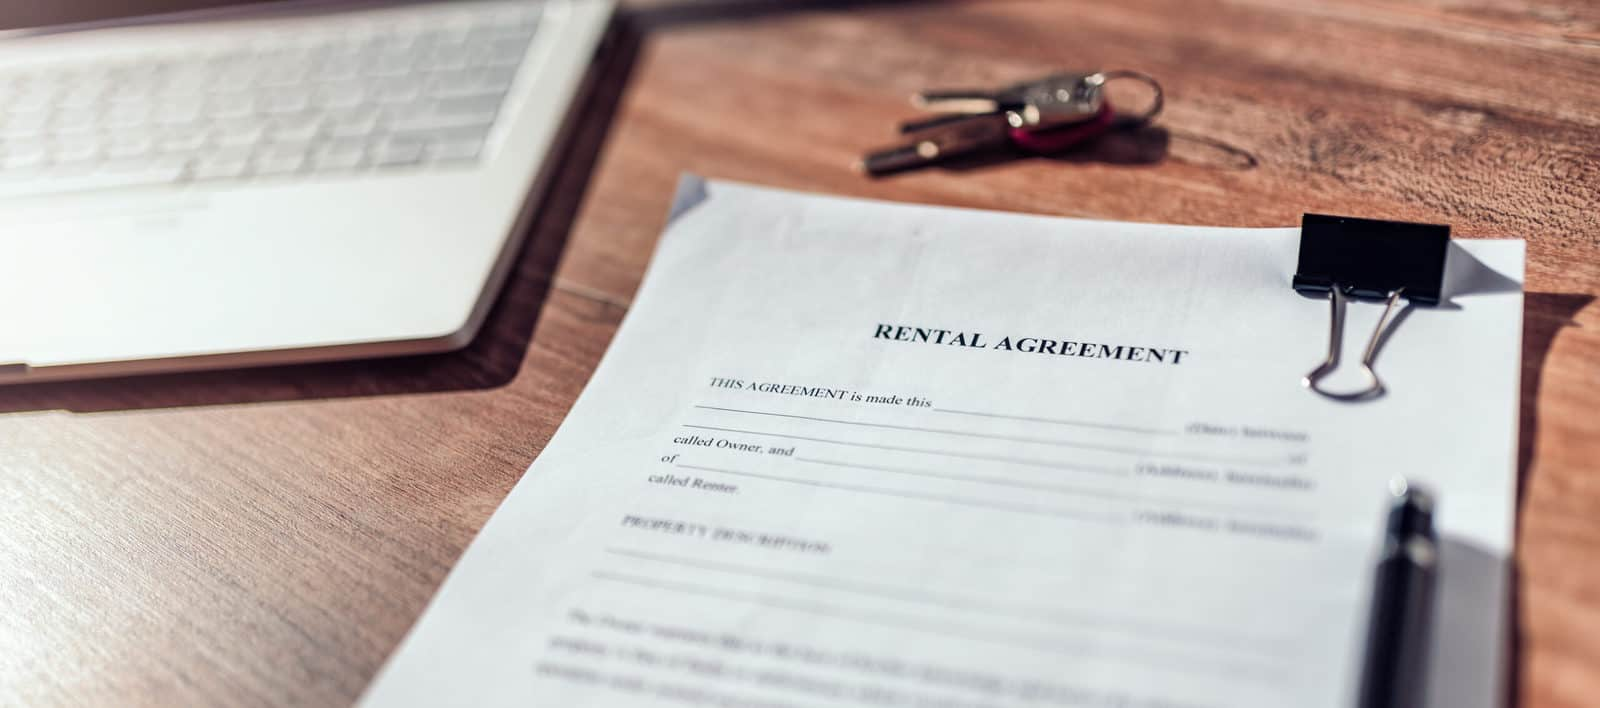 Rental agreement contract on the desk